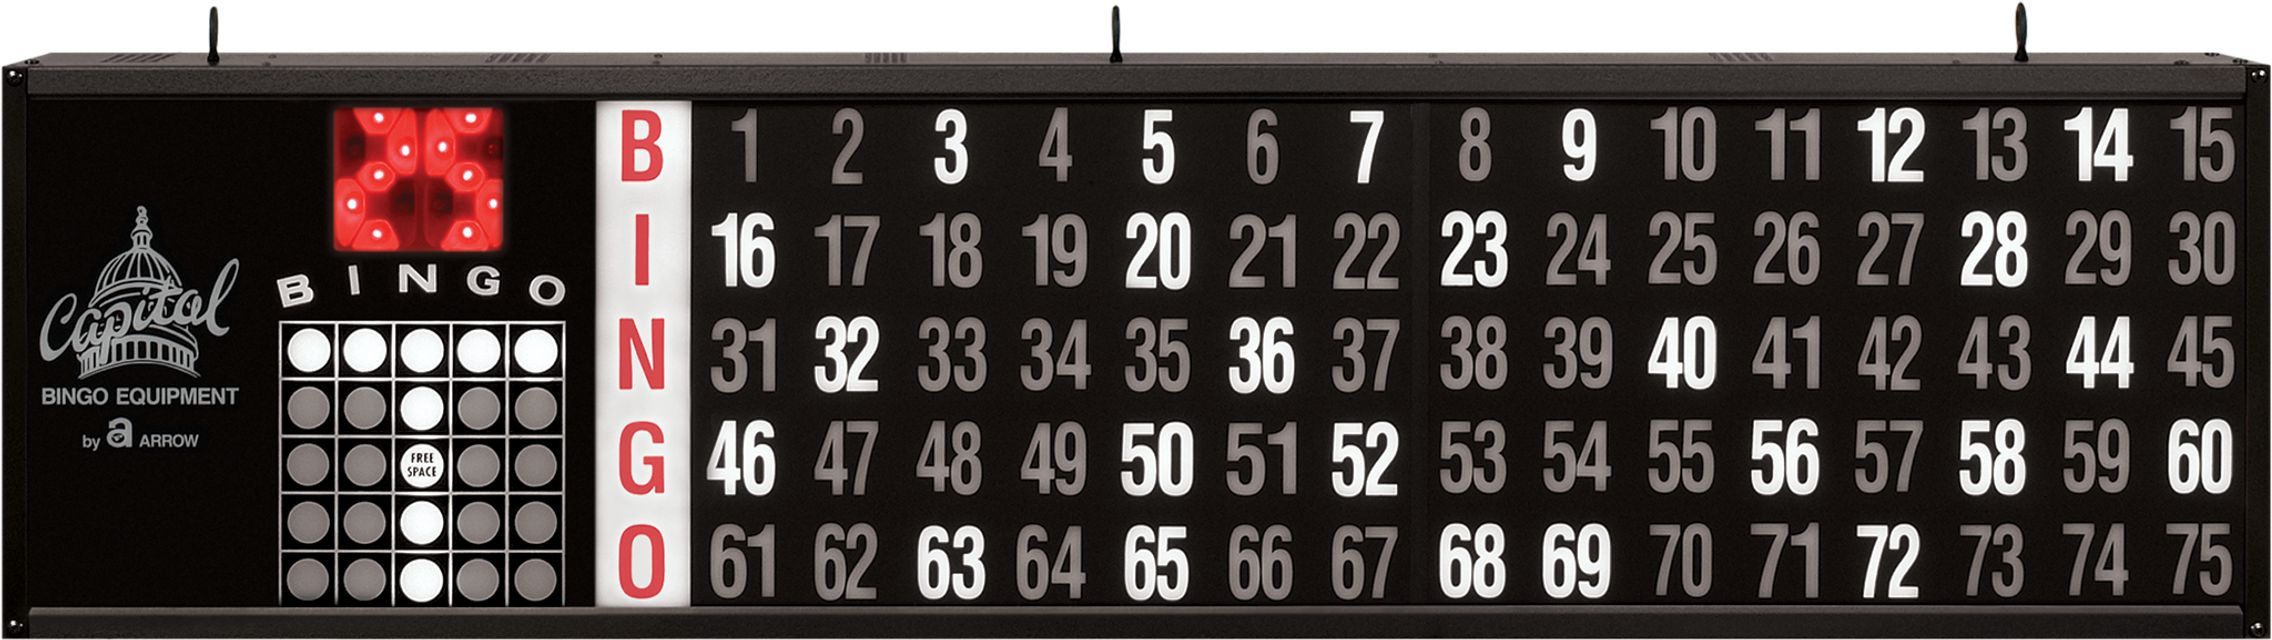 Access Game Indicator BINGO EQUIPMENT/Flashboards